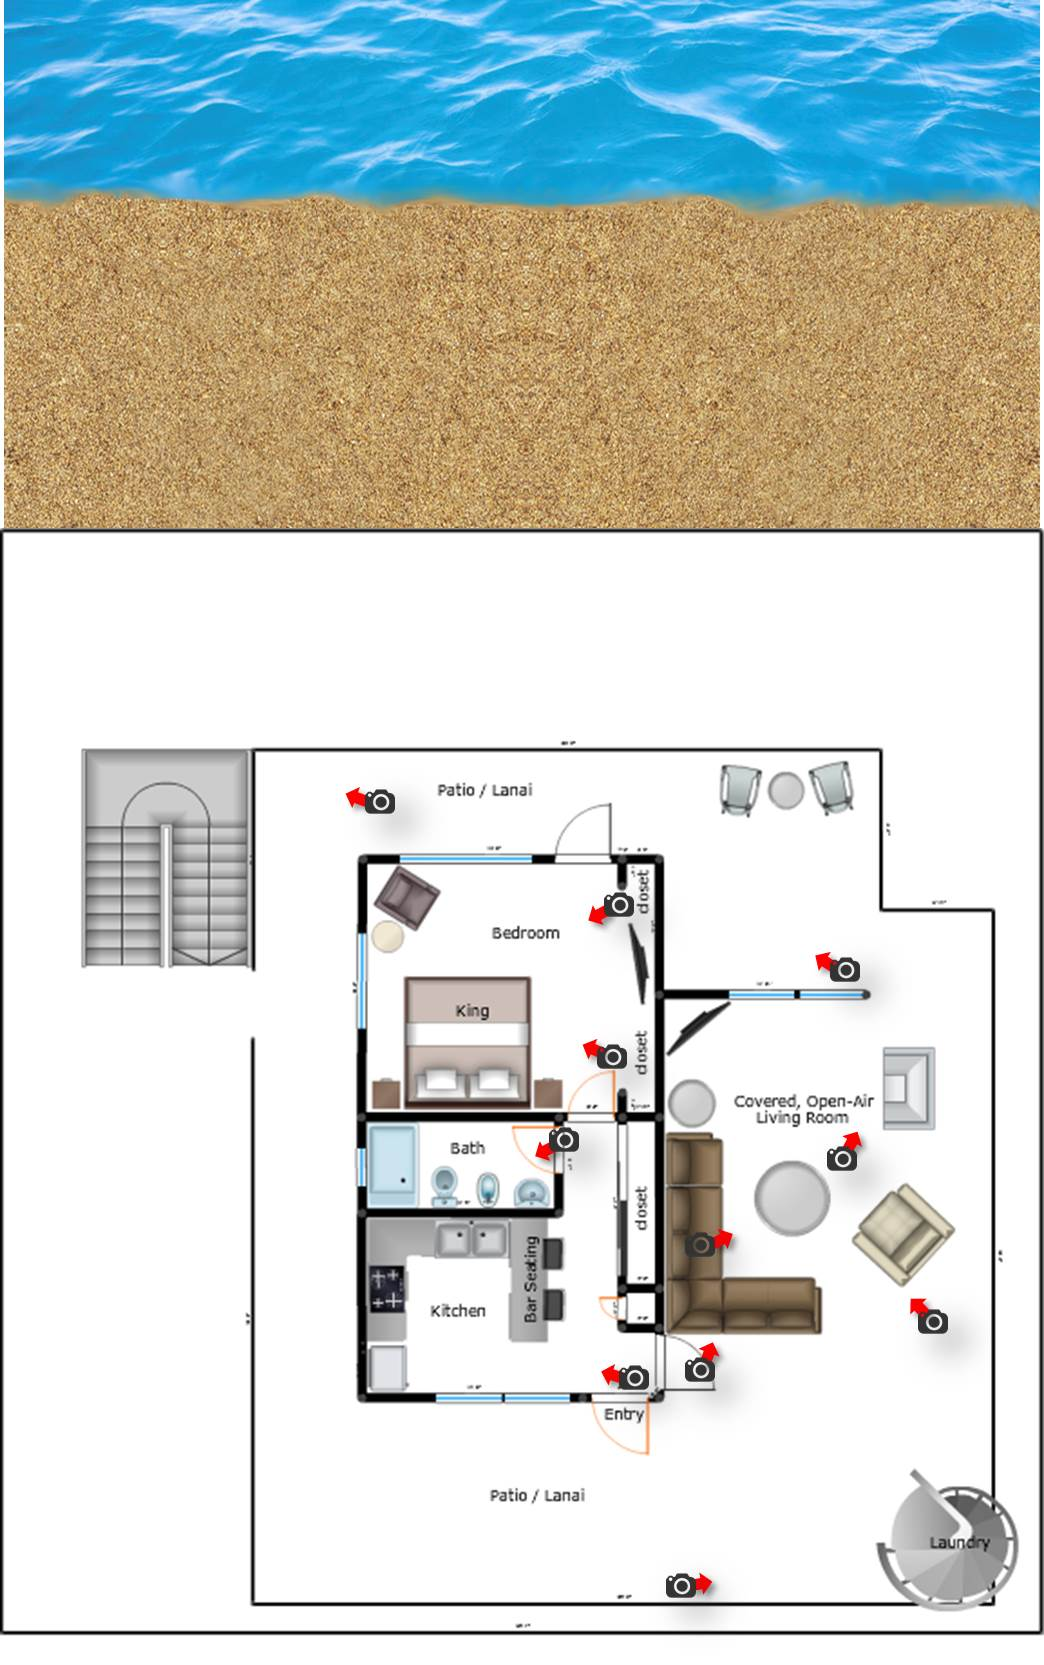 Top Unit: Floorplan & Photos